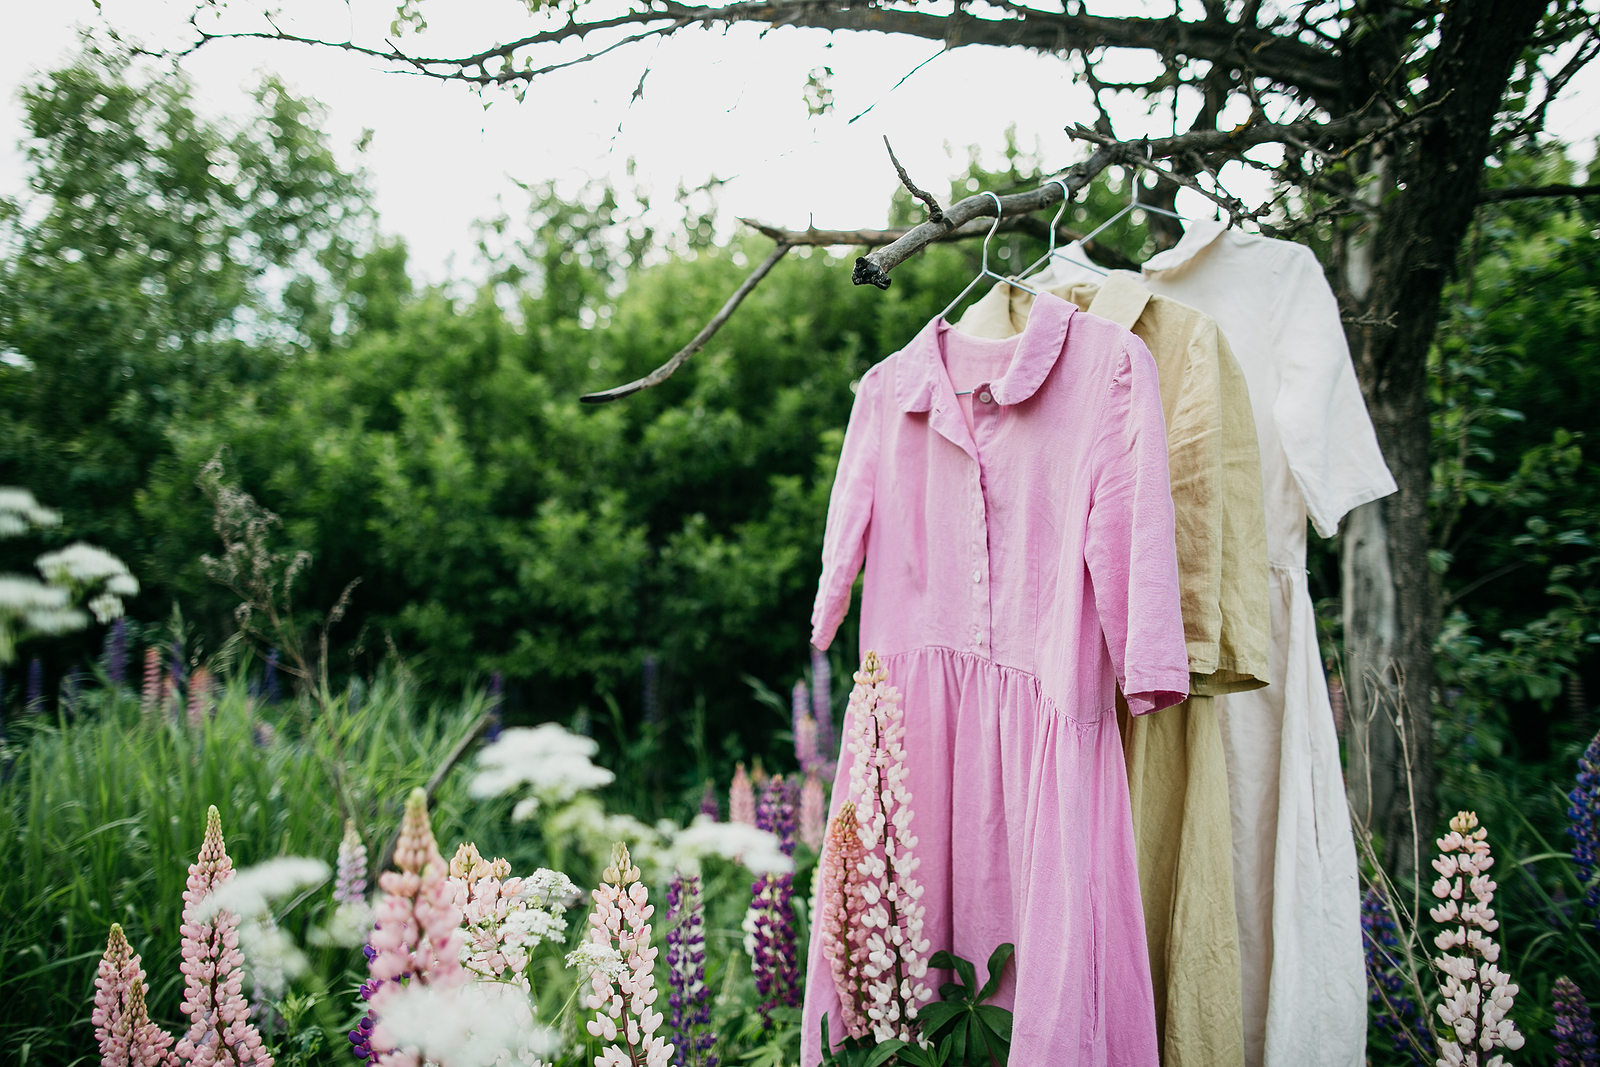 5 Sustainable Fashion Brands for Spring 2021